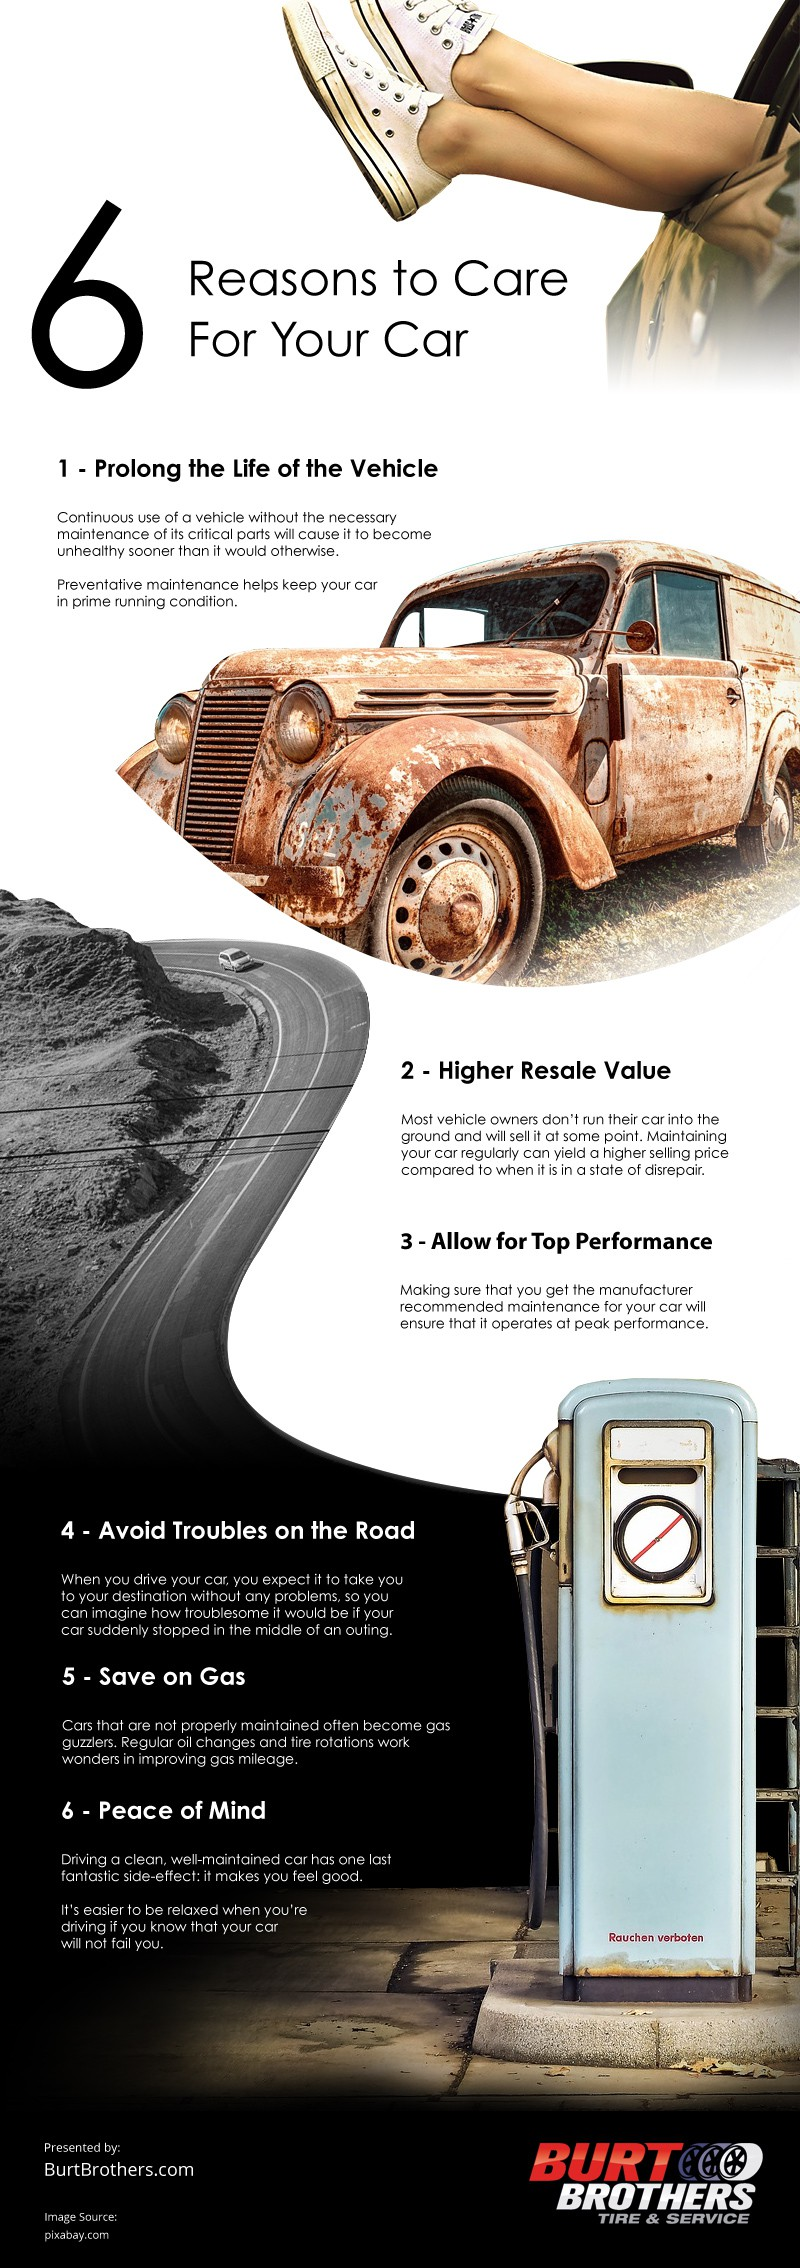 6 Reasons to Care for Your Car Infographic